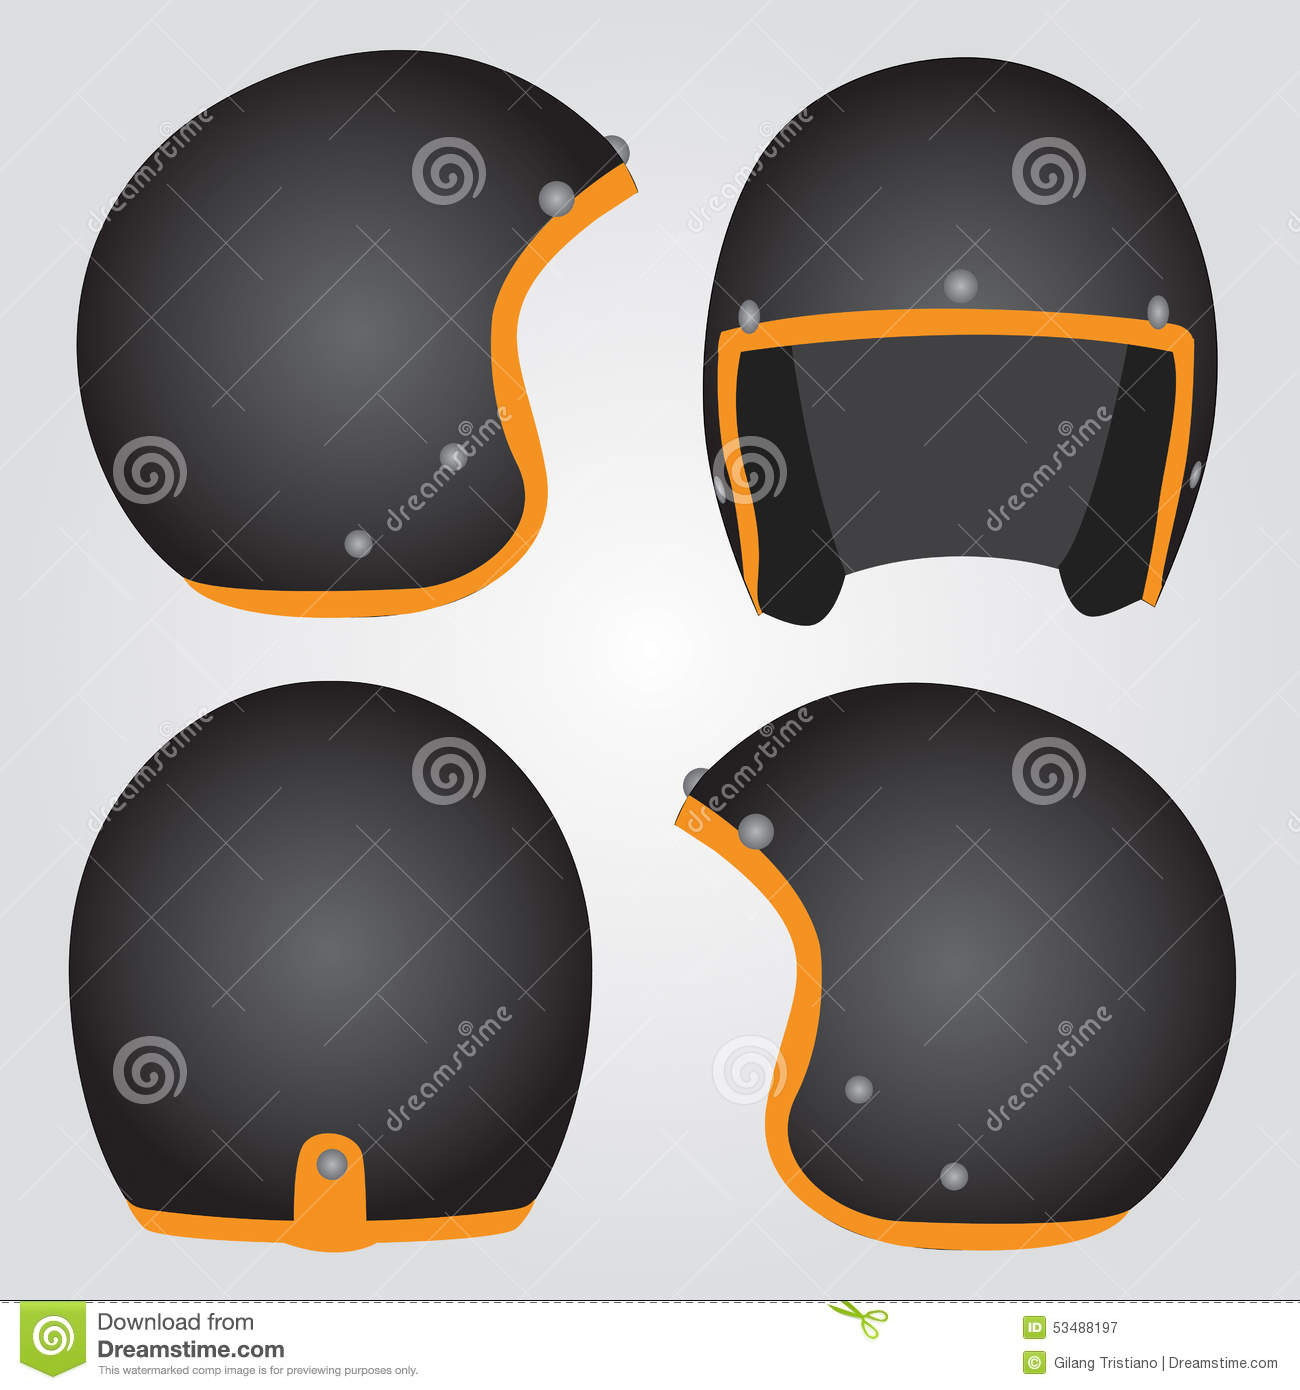 Retro Helmet Stock Illustration - Image: 53488197